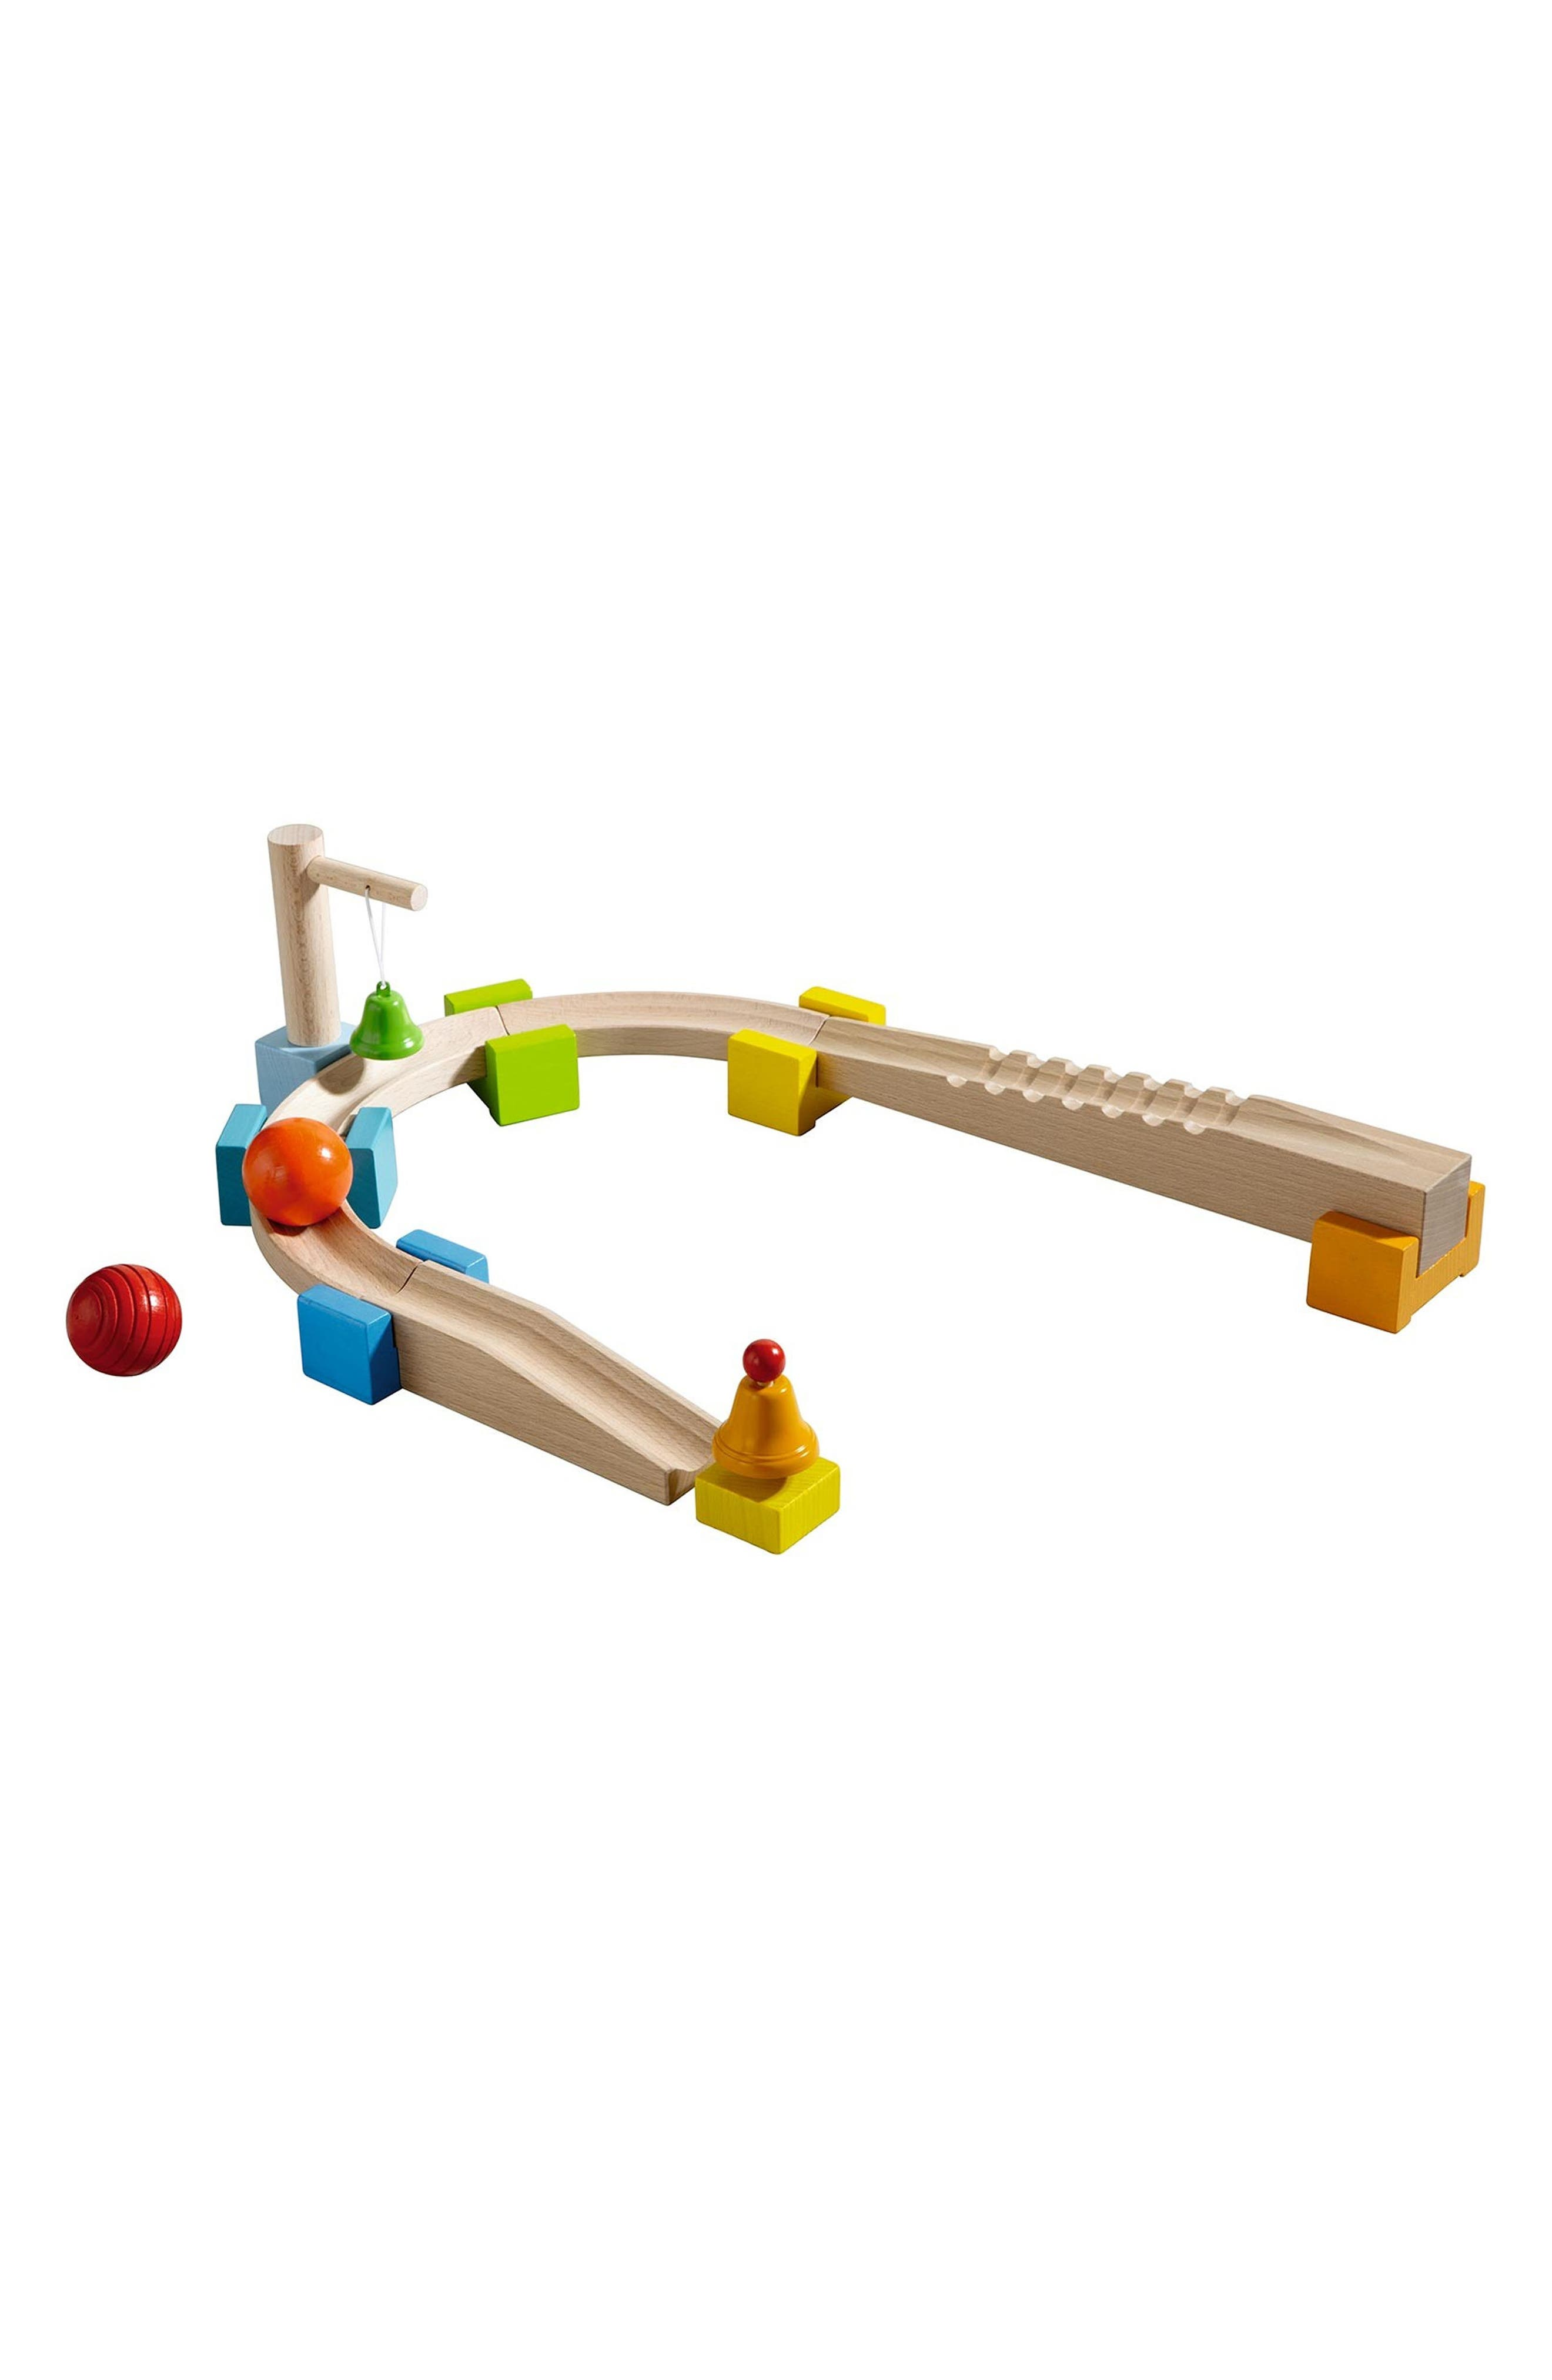 Alternate Image 1 Selected - HABA My First Ball Track - 14-Piece Basic Pack Chatter Track Play Set